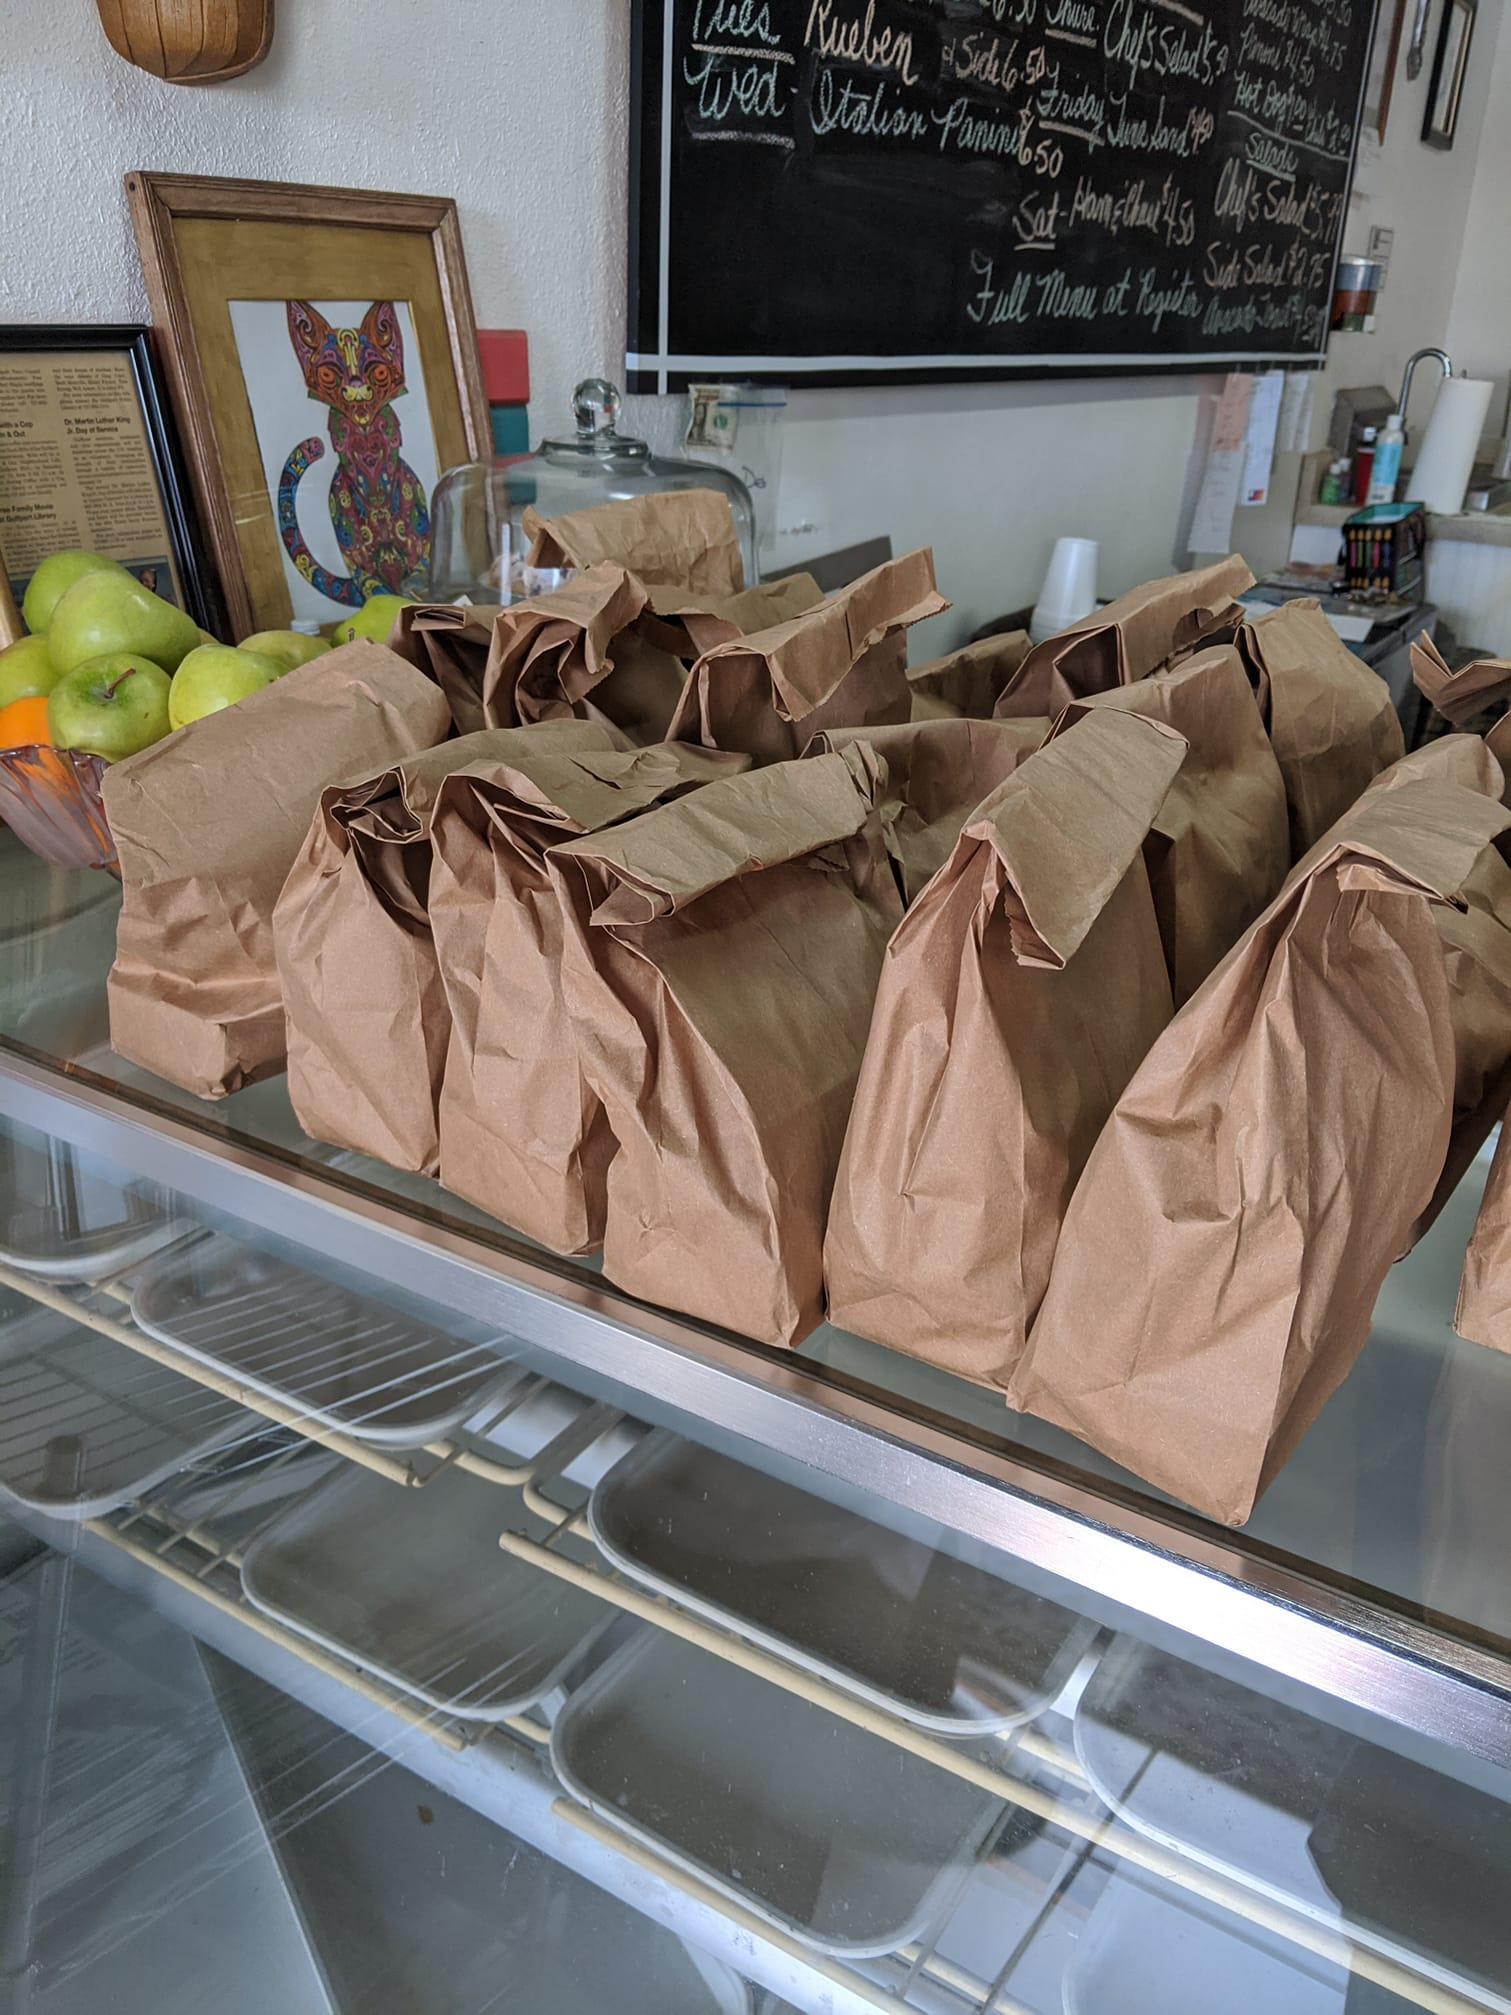 A group of lunches in brown paper bags.